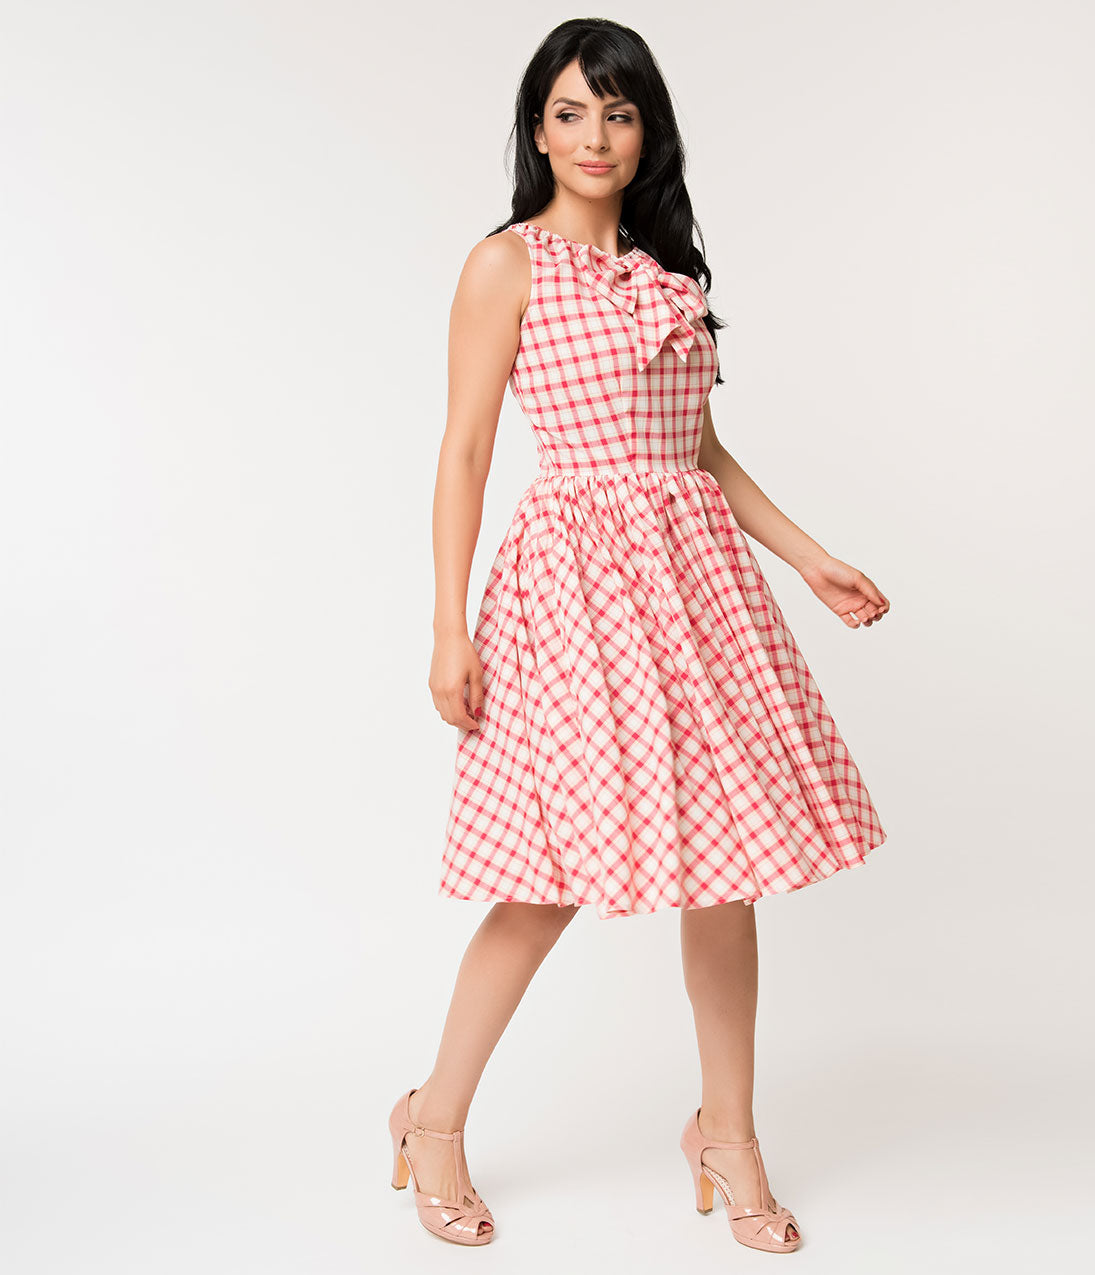 Fifties Dresses : 1950s Style Swing to Wiggle Dresses Unique Vintage 1950S Style Raspberry Pink Plaid Doheny Swing Dress $98.00 AT vintagedancer.com